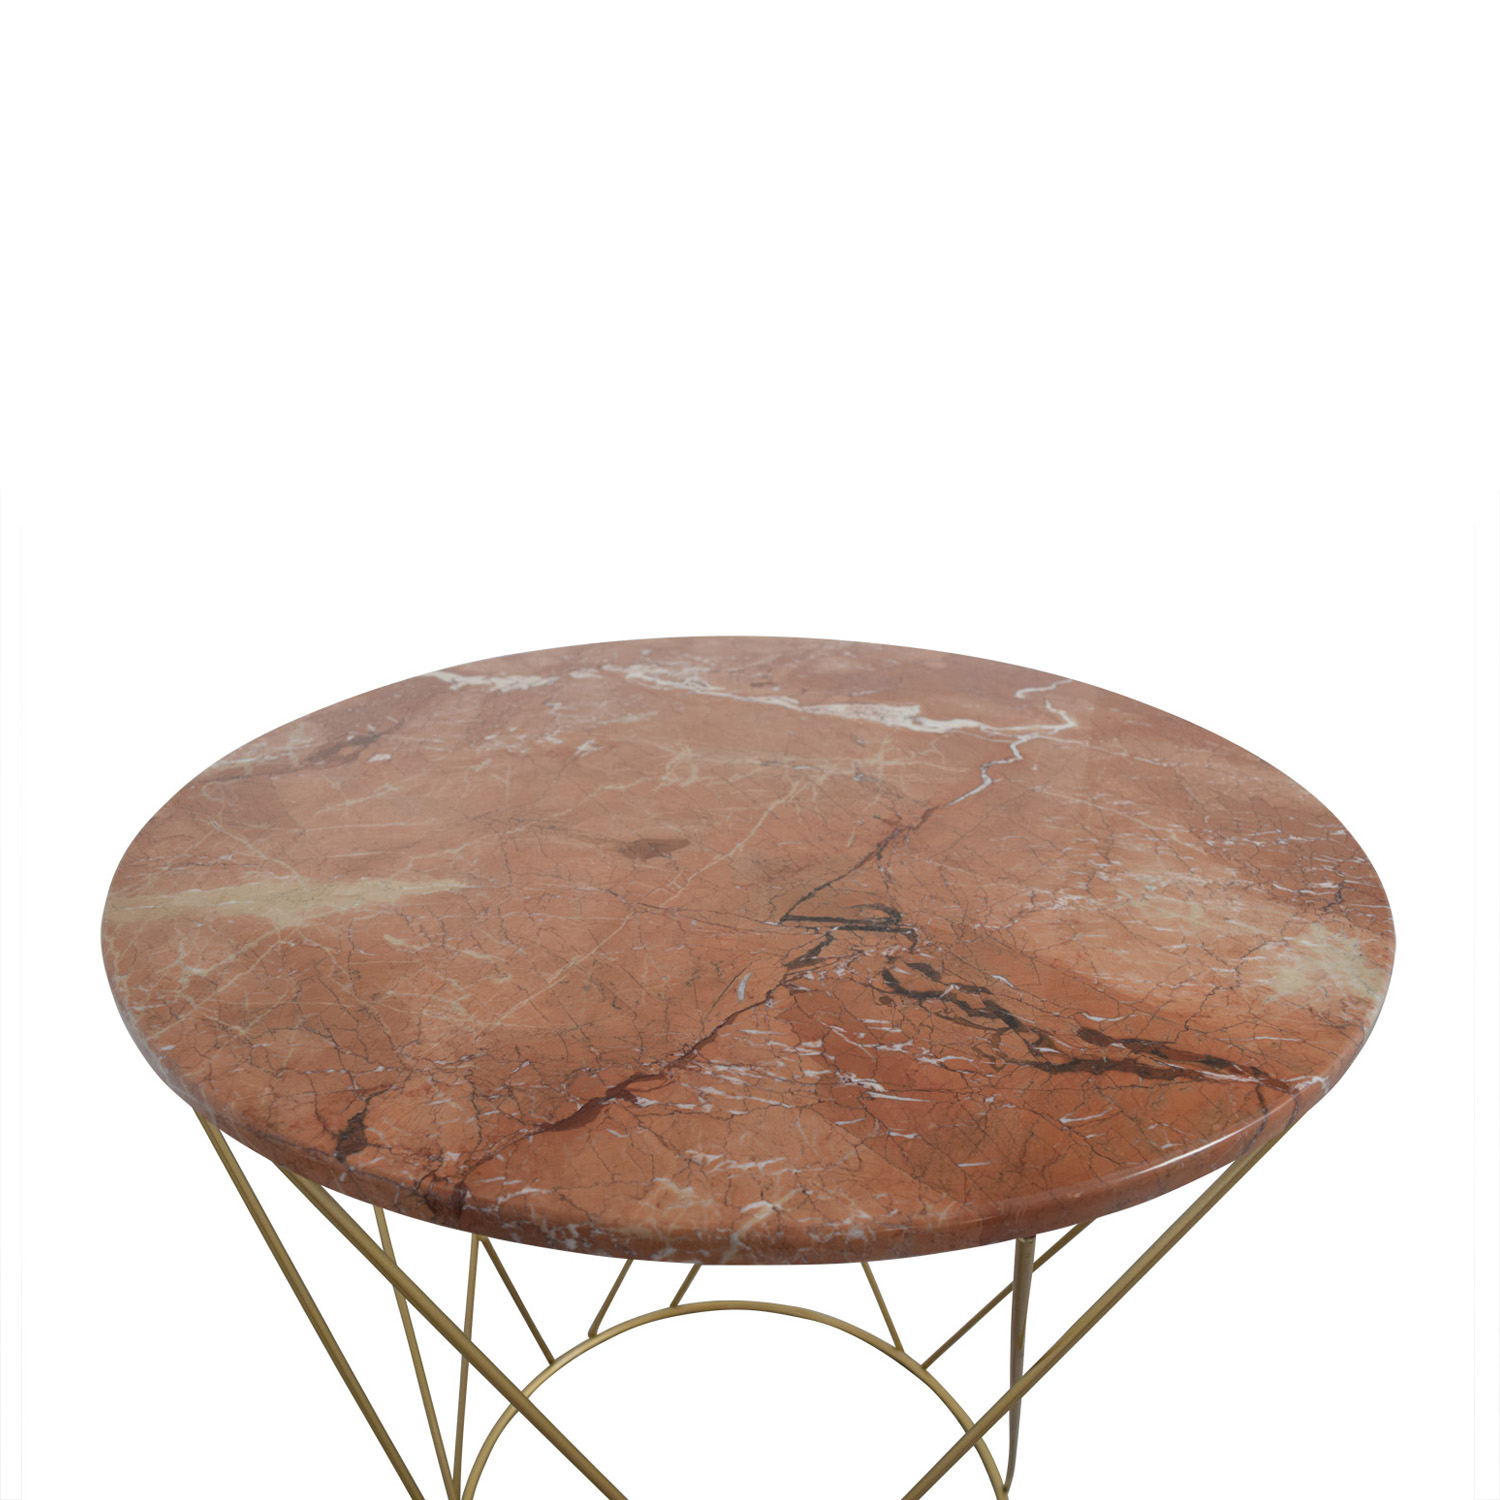 off lotus pink gold round marble table tables second hand accent very small occasional target threshold drawer dining room and chairs drum chair glass dinner sofa with storage